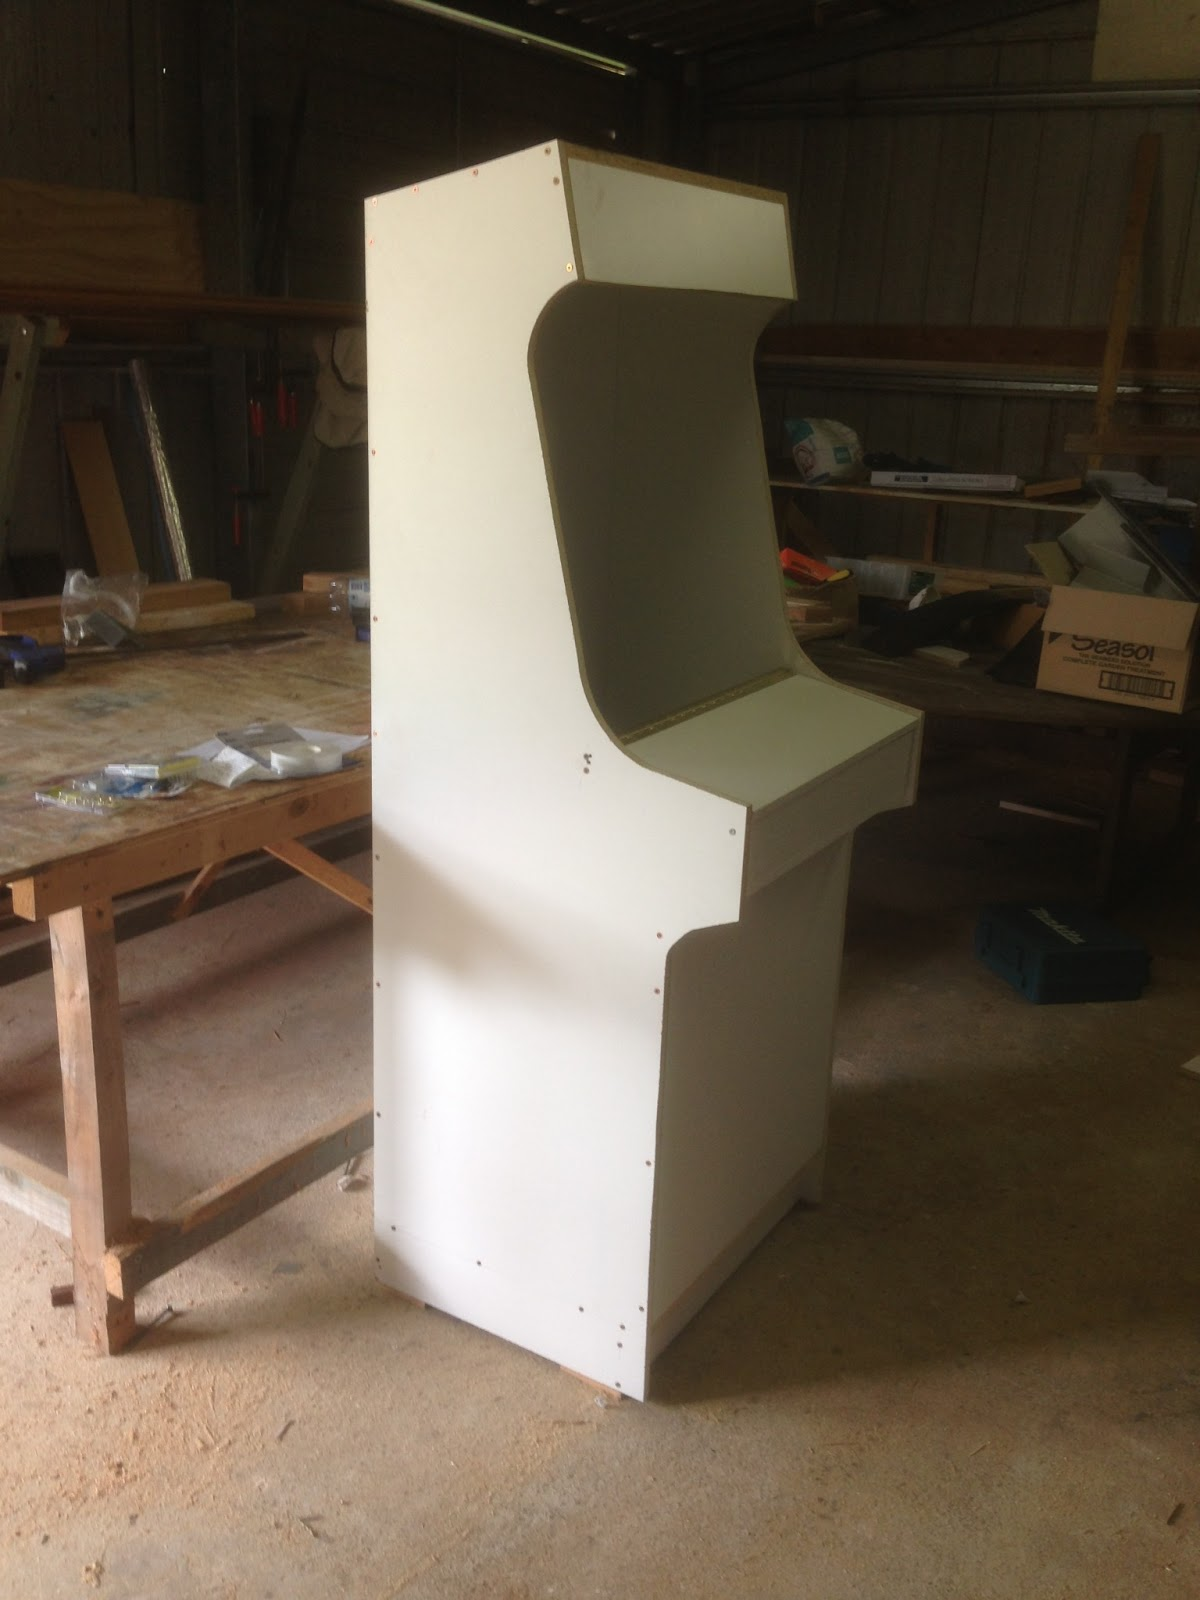 Hyperspin Arcade Cabinet Project